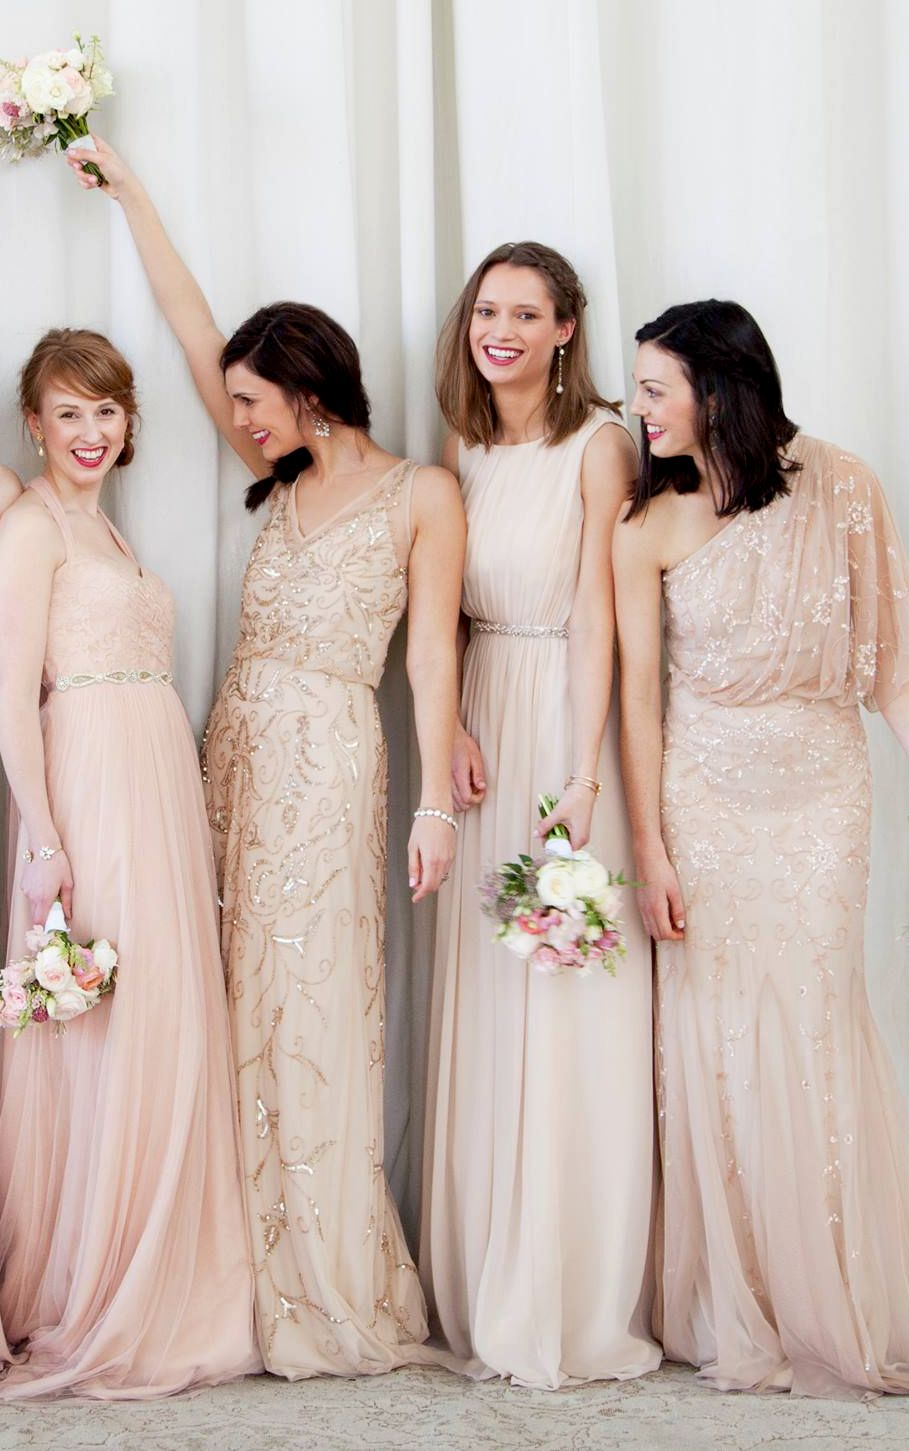 Nude and blush gowns shop now wedding weddings and dream wedding nude and blush gowns shop now champagne bridesmaidsmismatched ombrellifo Choice Image